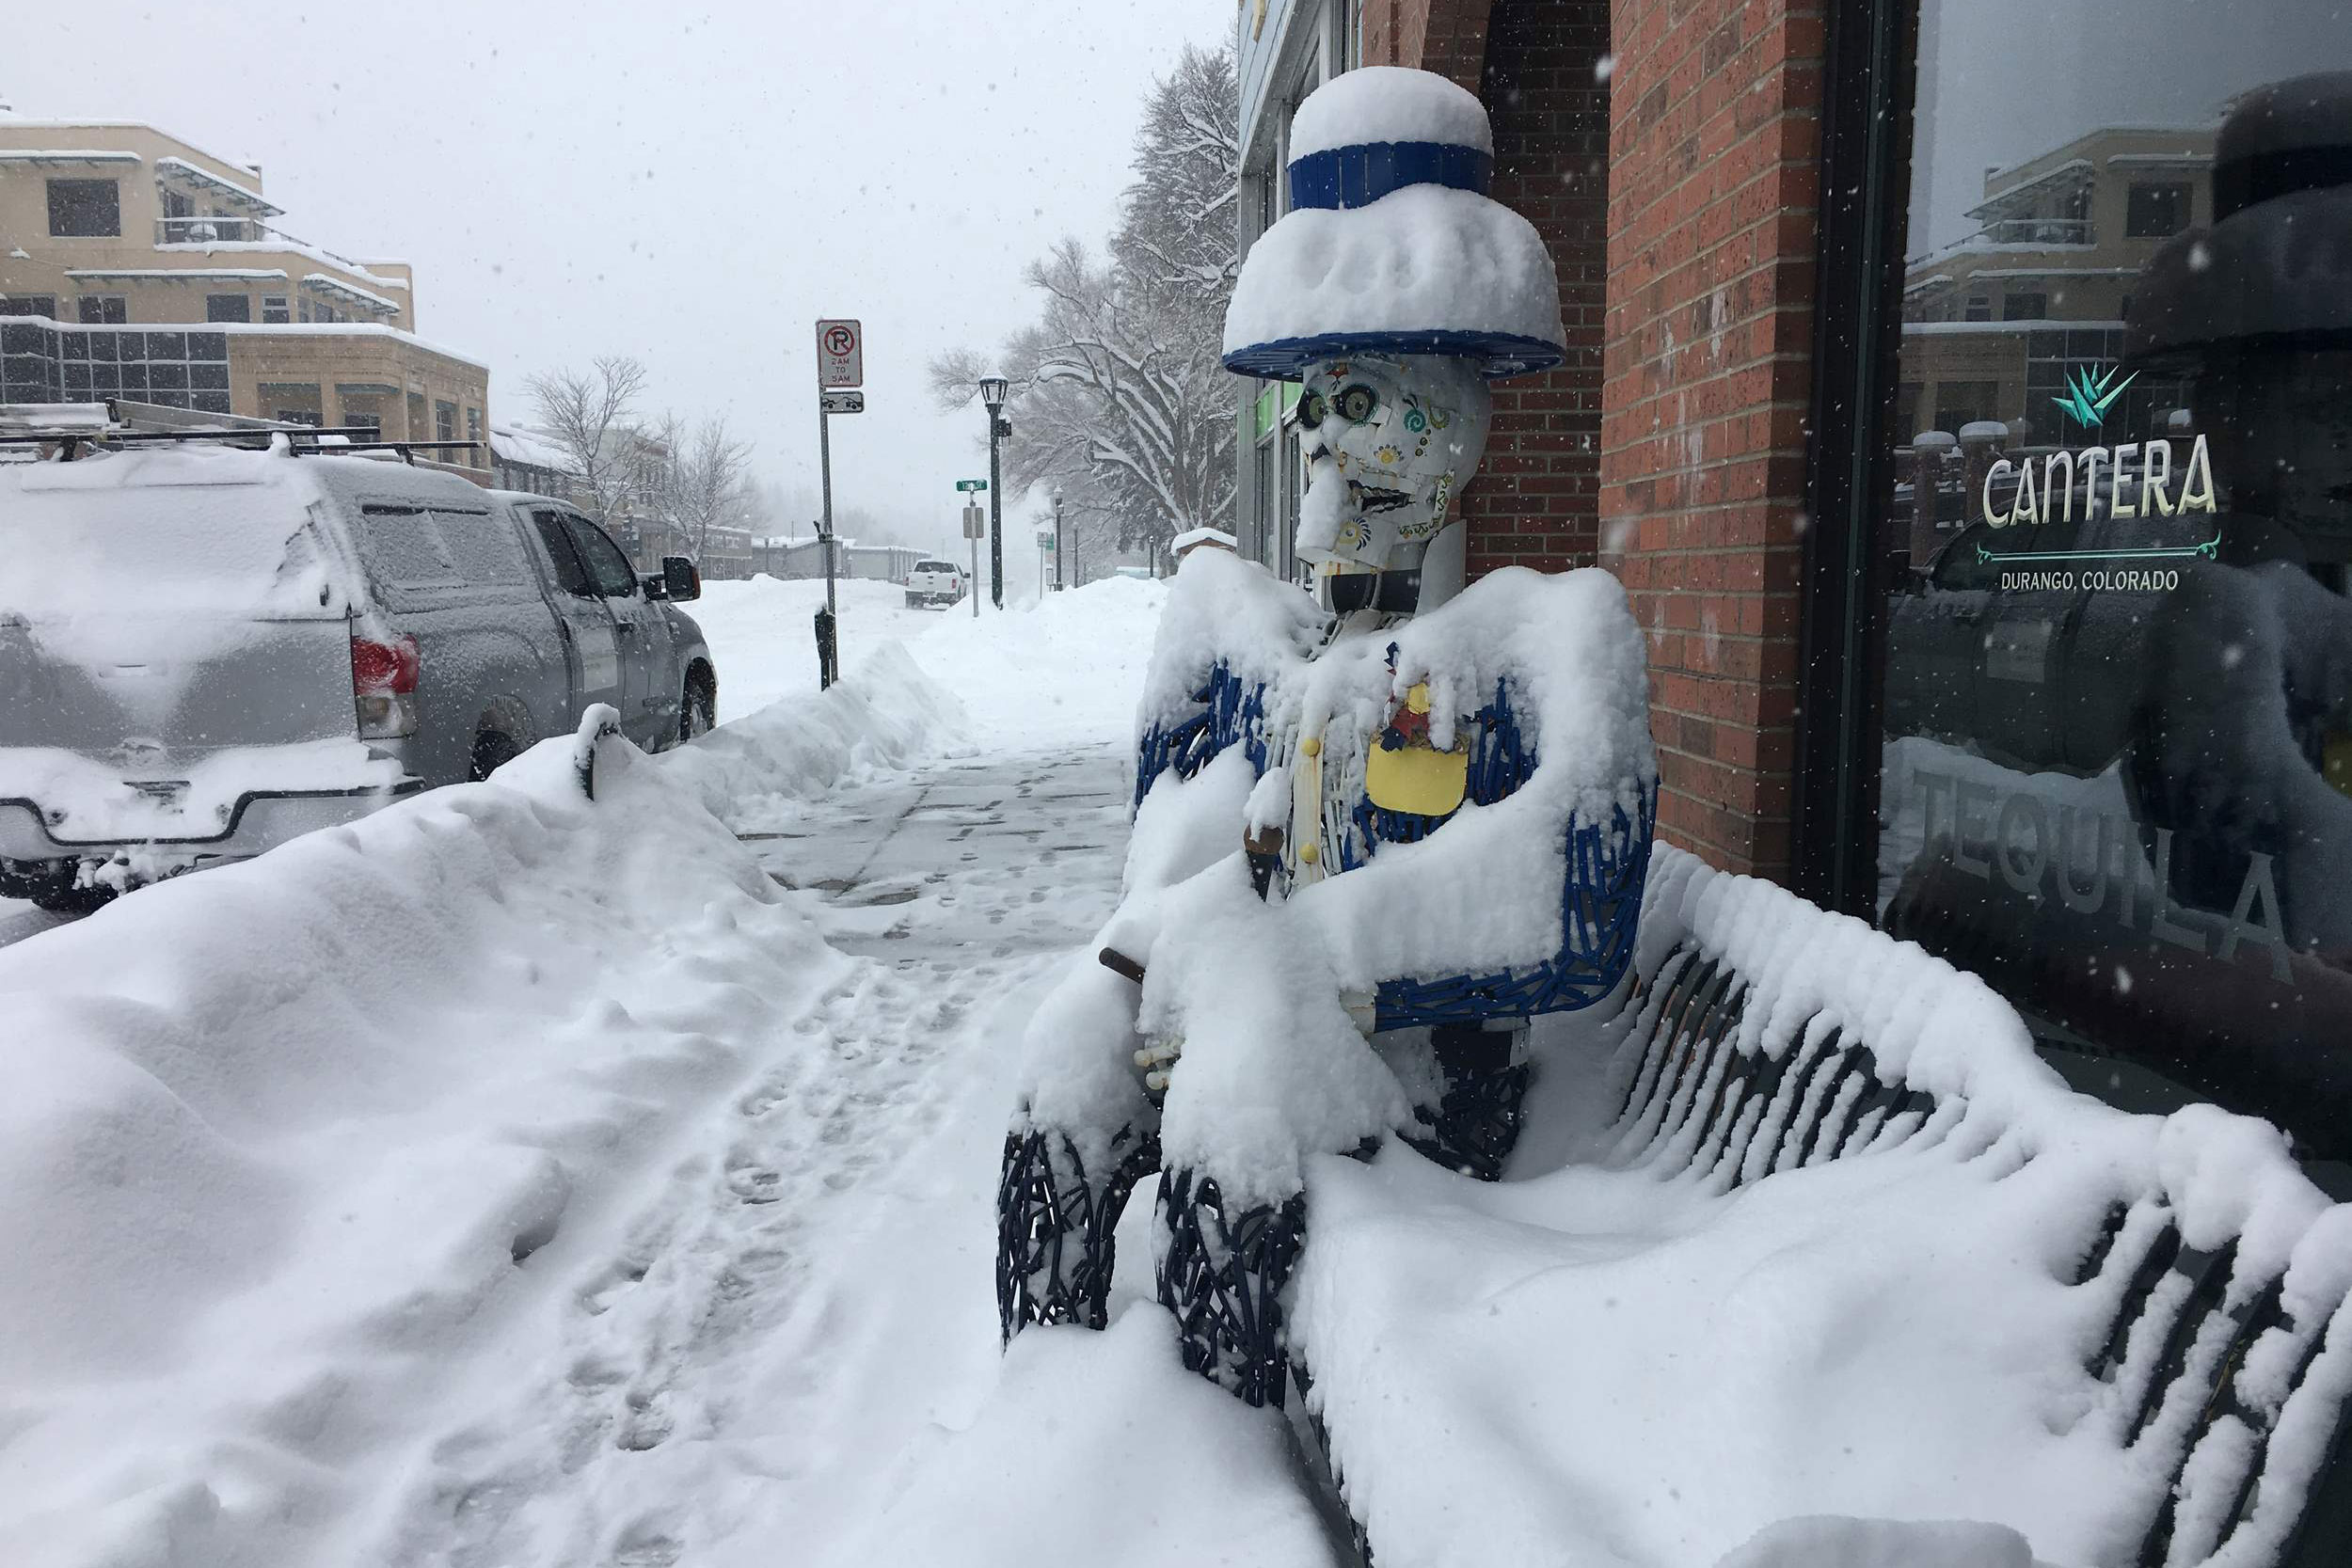 <p>A skeleton man takes in the big snowfall has theysiton bench in front of CanteraRestaurtant in Durango, Colo., Feb. 21, 2019.</p>